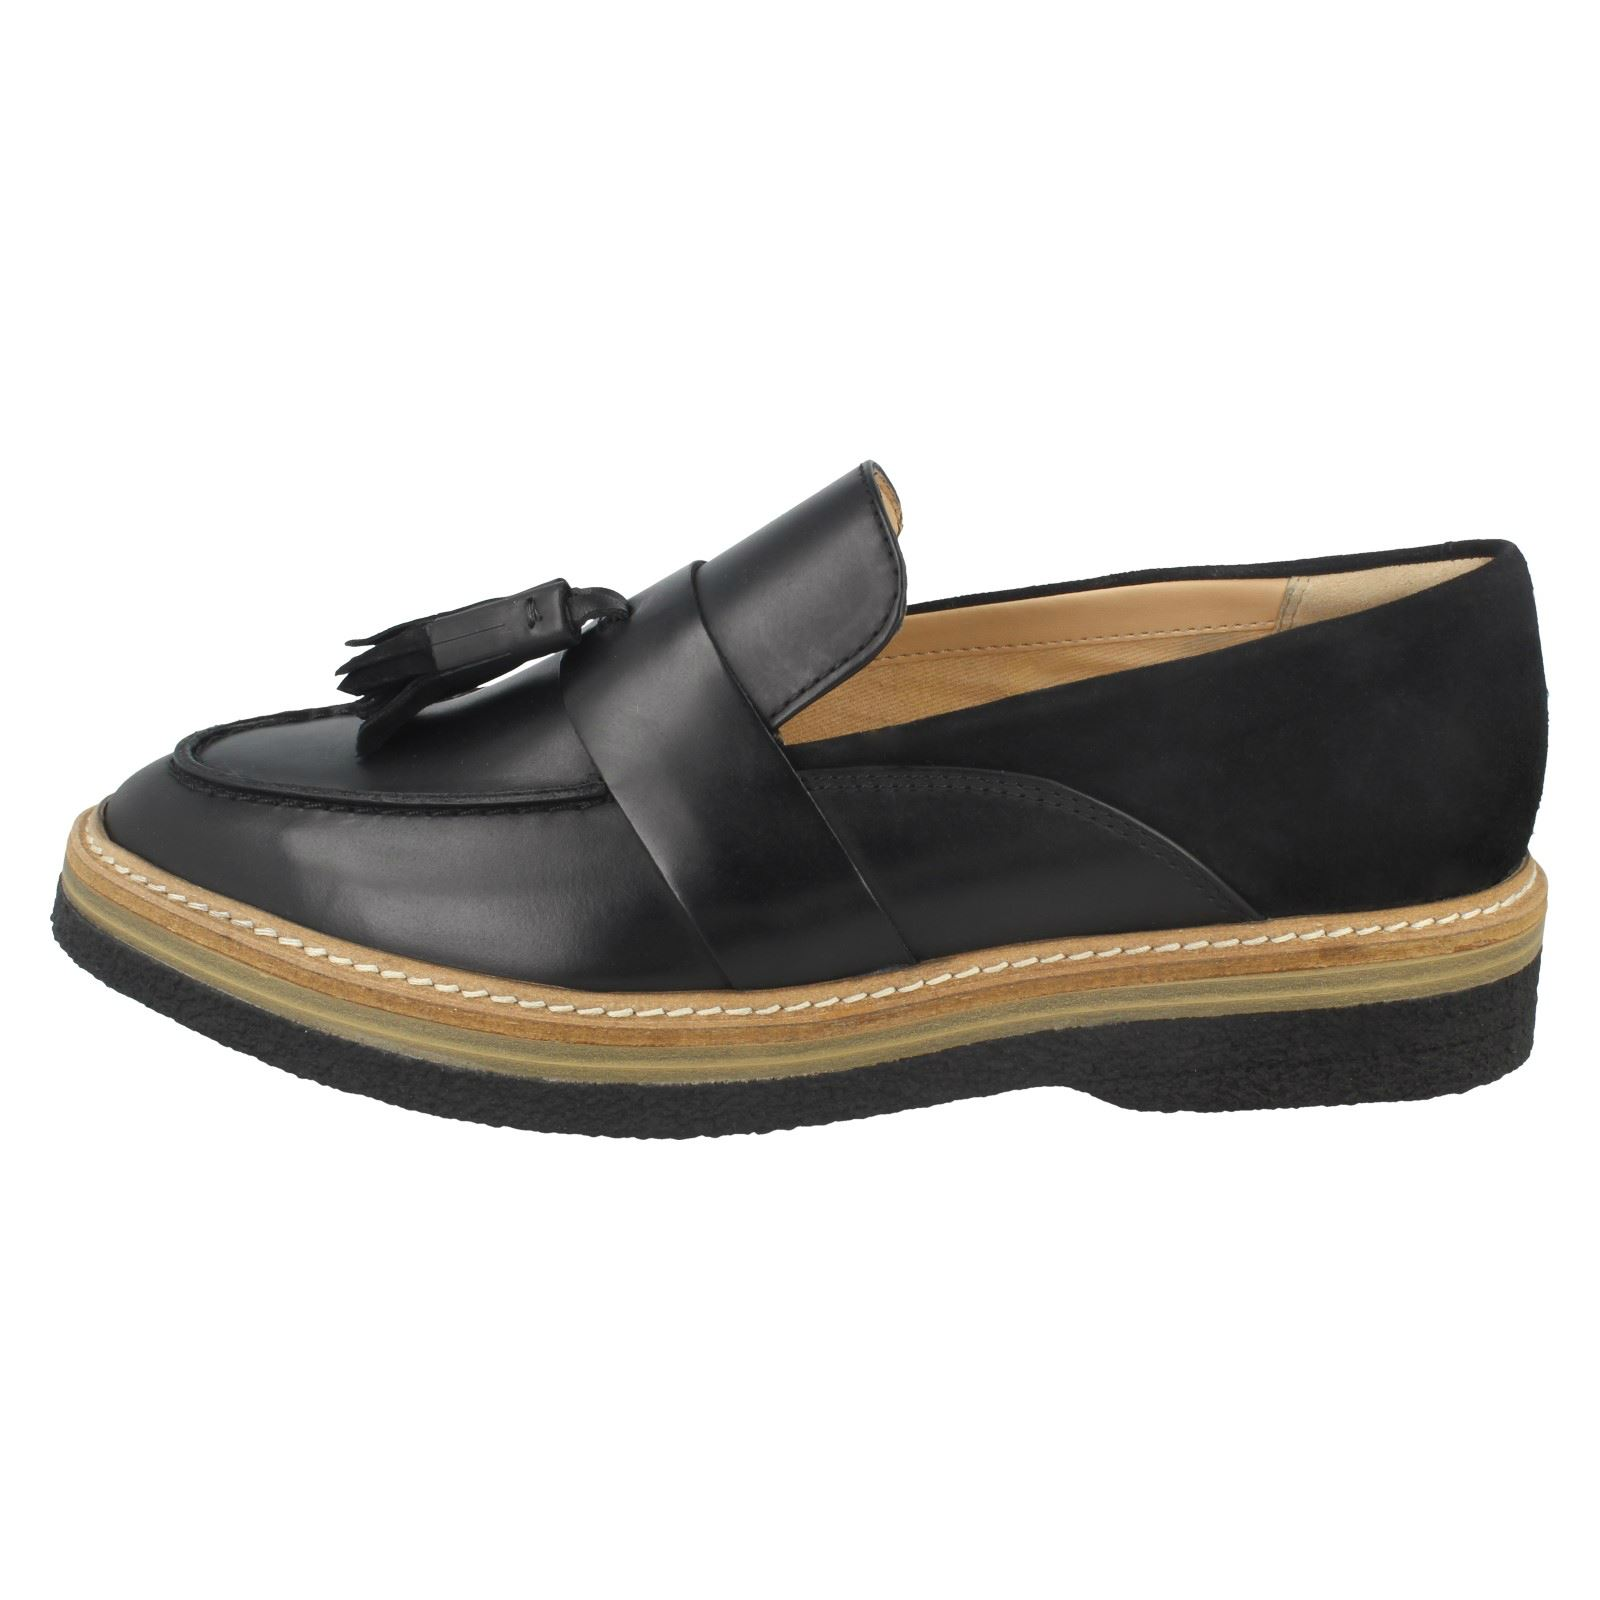 Ladies Clarks Clarks Clarks Zante Spring Flat Loafer shoes 3bee05